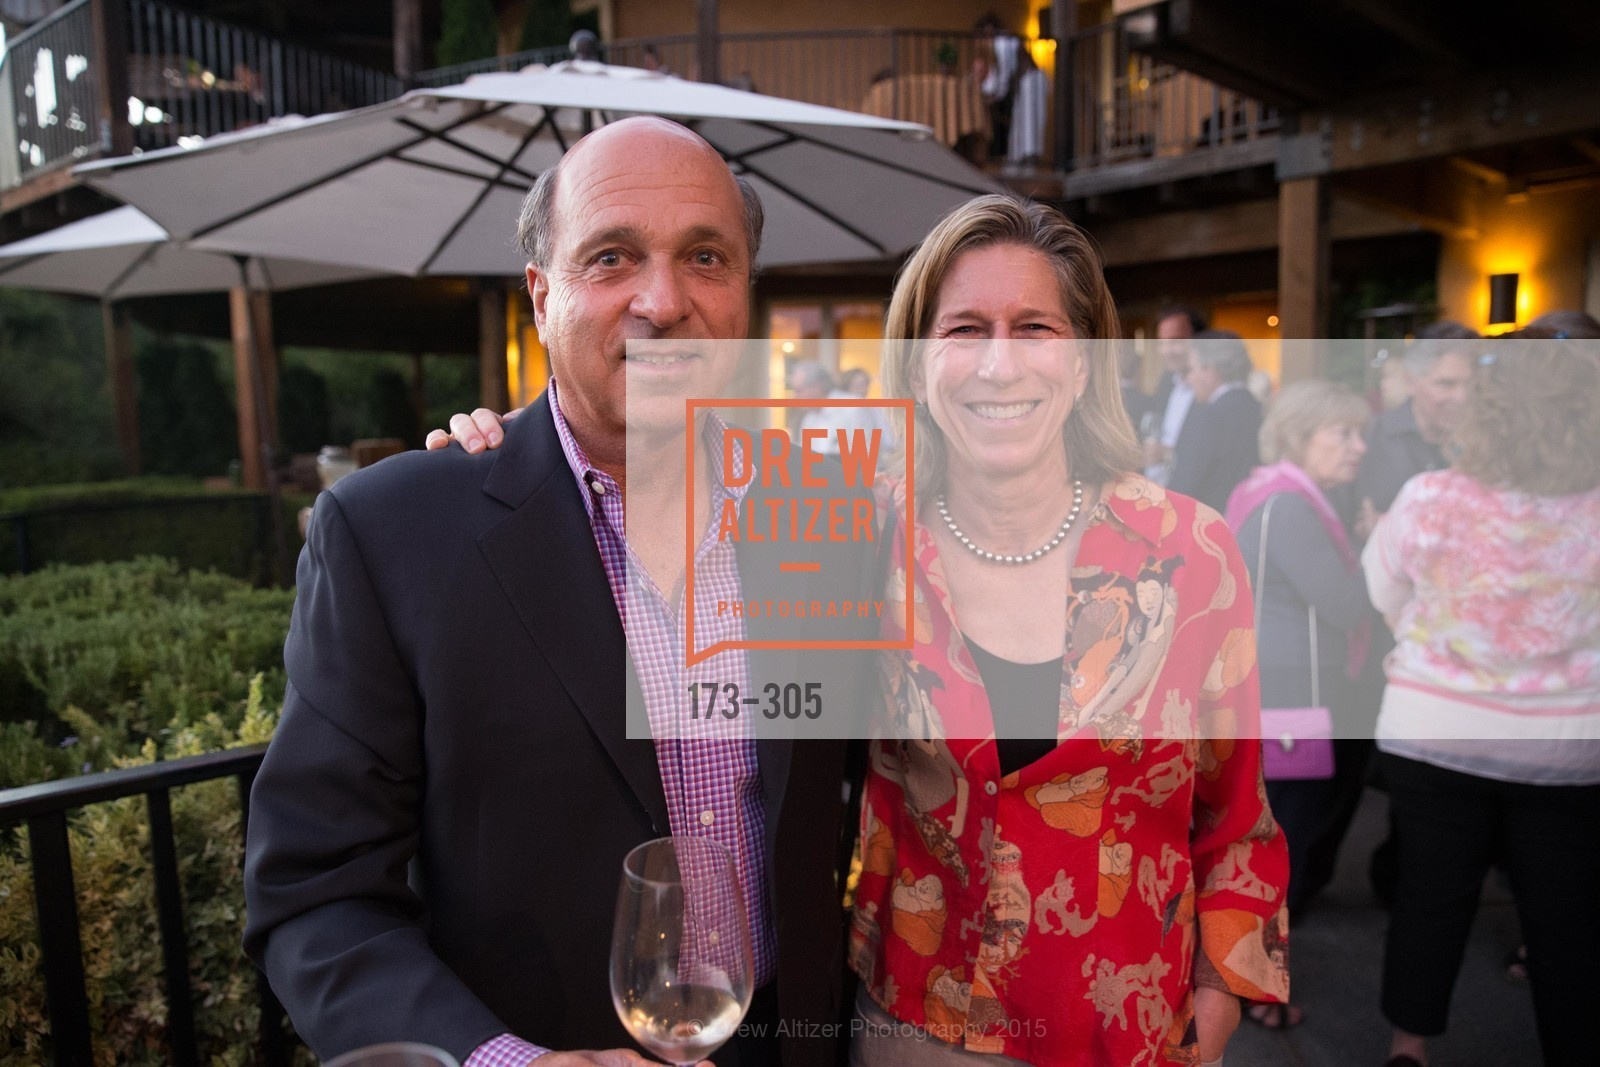 David Abreu, Beth Novak Millikem, LE PAN Napa Valley Launch Cocktail Party, Auberge dr Soliel, September 22nd, 2015,Drew Altizer, Drew Altizer Photography, full-service agency, private events, San Francisco photographer, photographer california